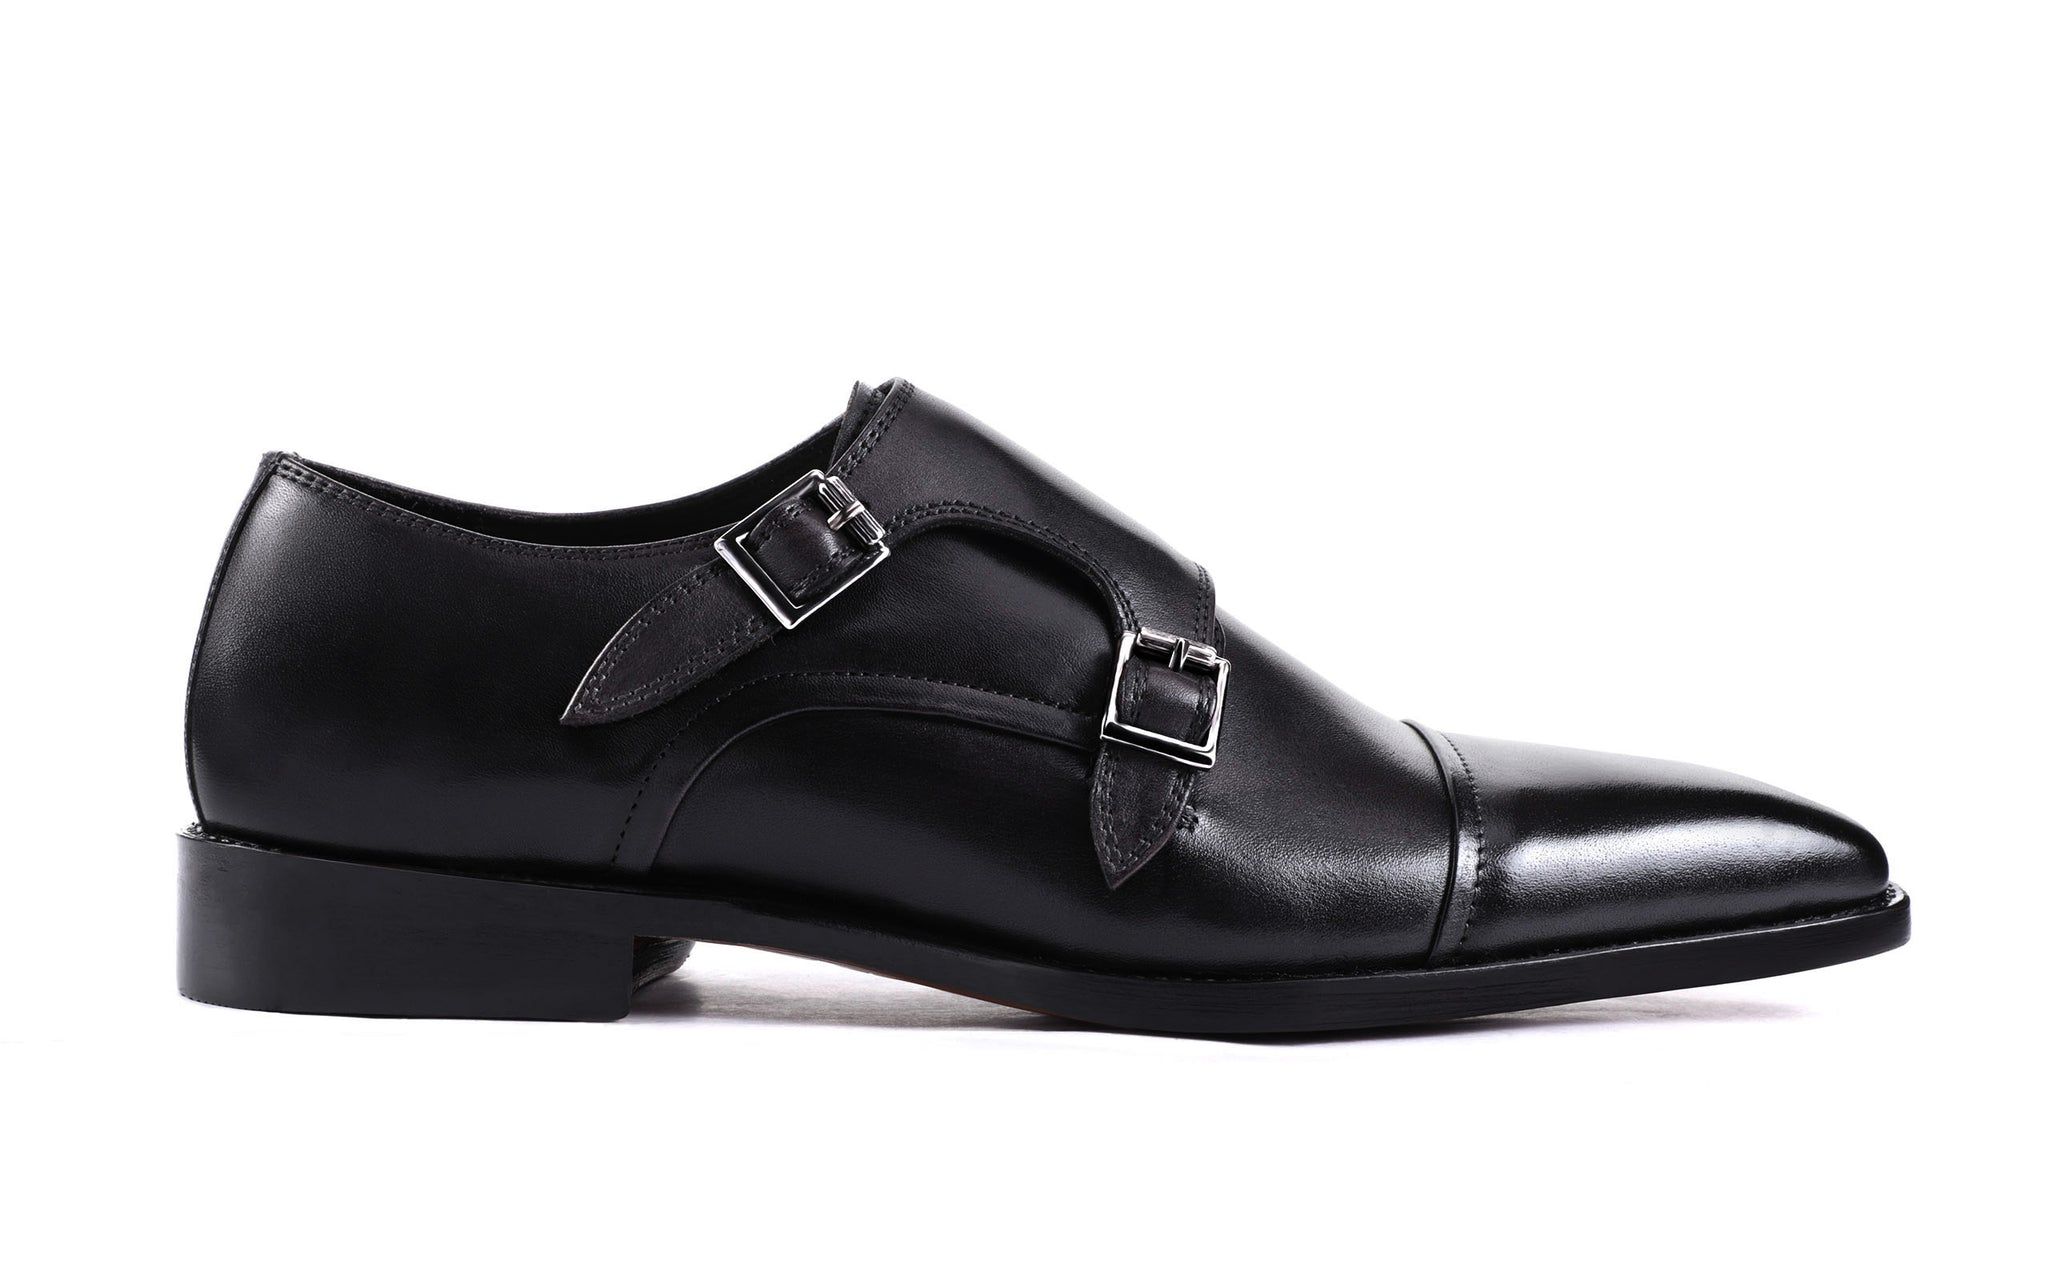 double-monk-strap-dress-shoes‎